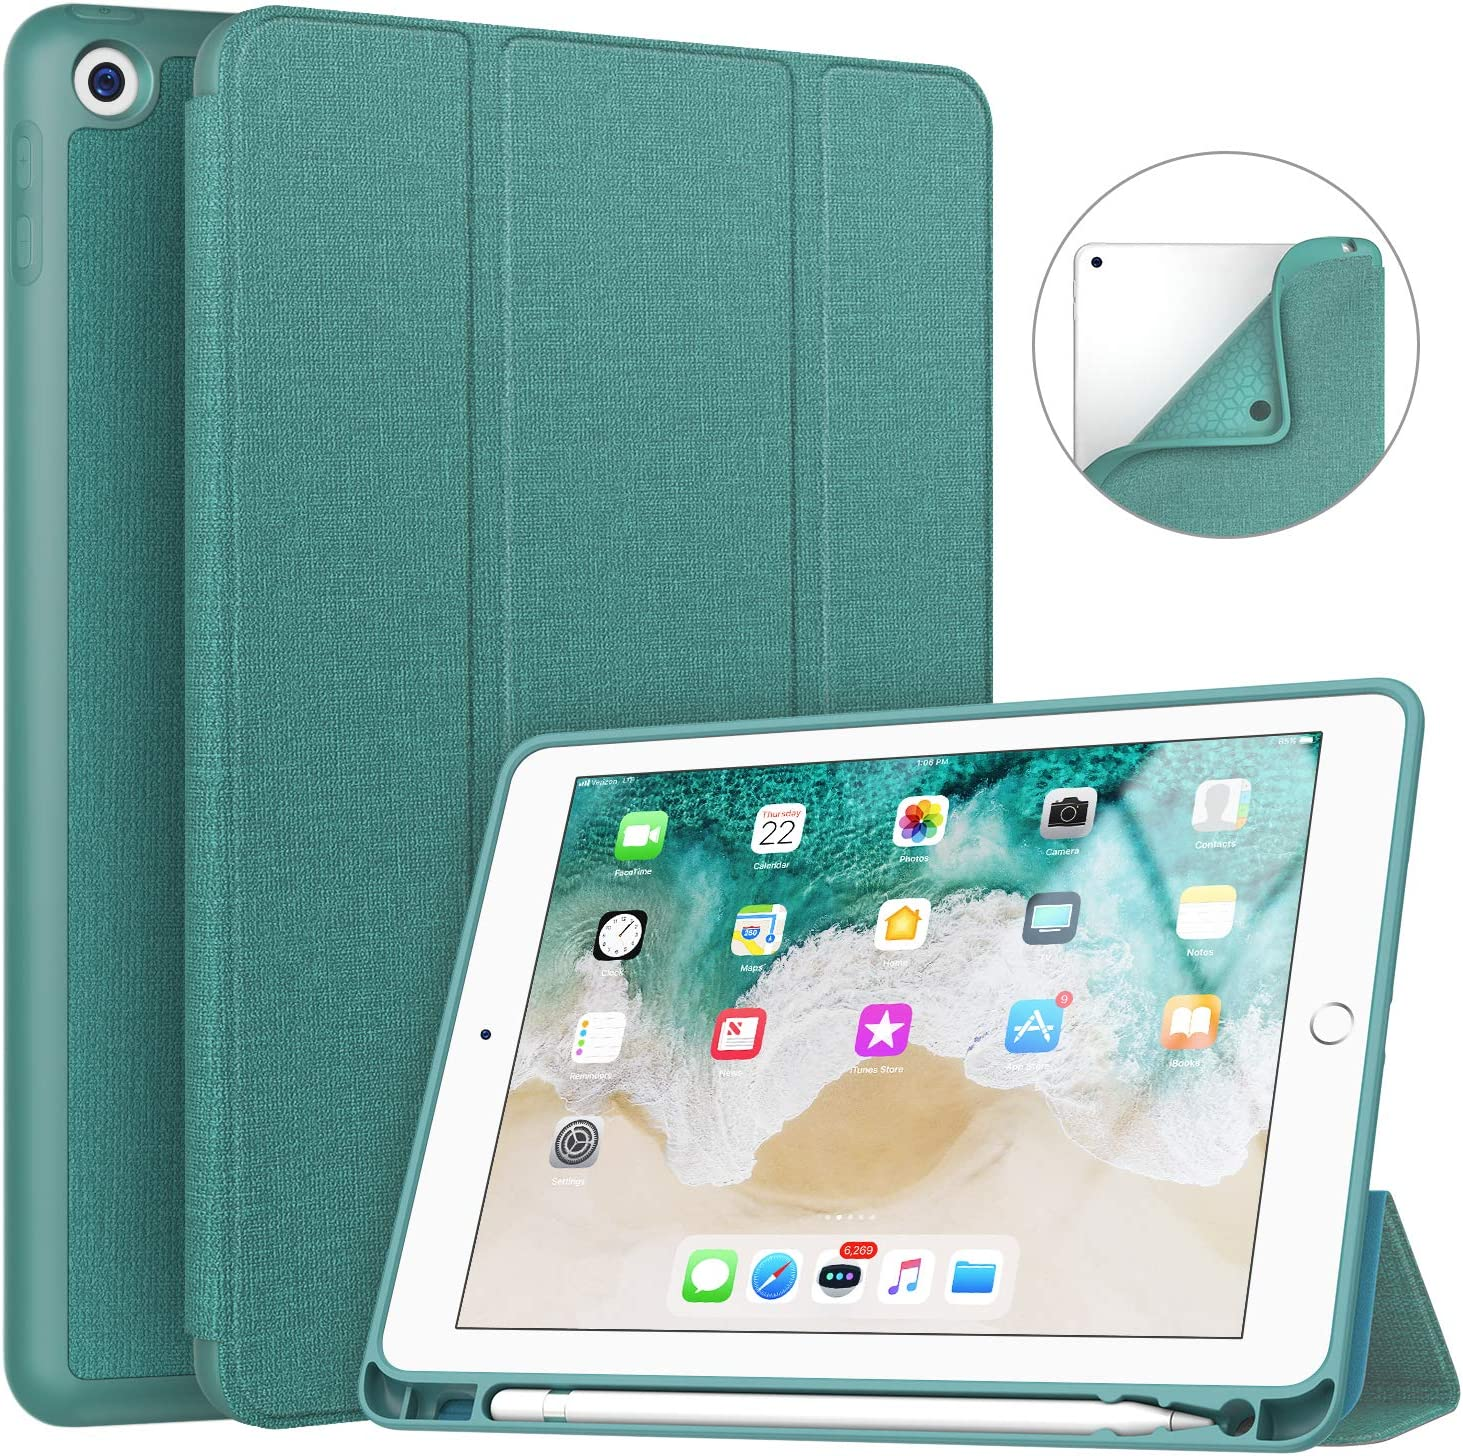 Soke iPad 9.7 2018/2017 Case with Pencil Holder, Smart iPad Case Trifold Stand with Shockproof Soft TPU Back Cover and Auto Sleep/Wake Function for iPad 9.7 inch 5th/6th Generation, Lake Blue